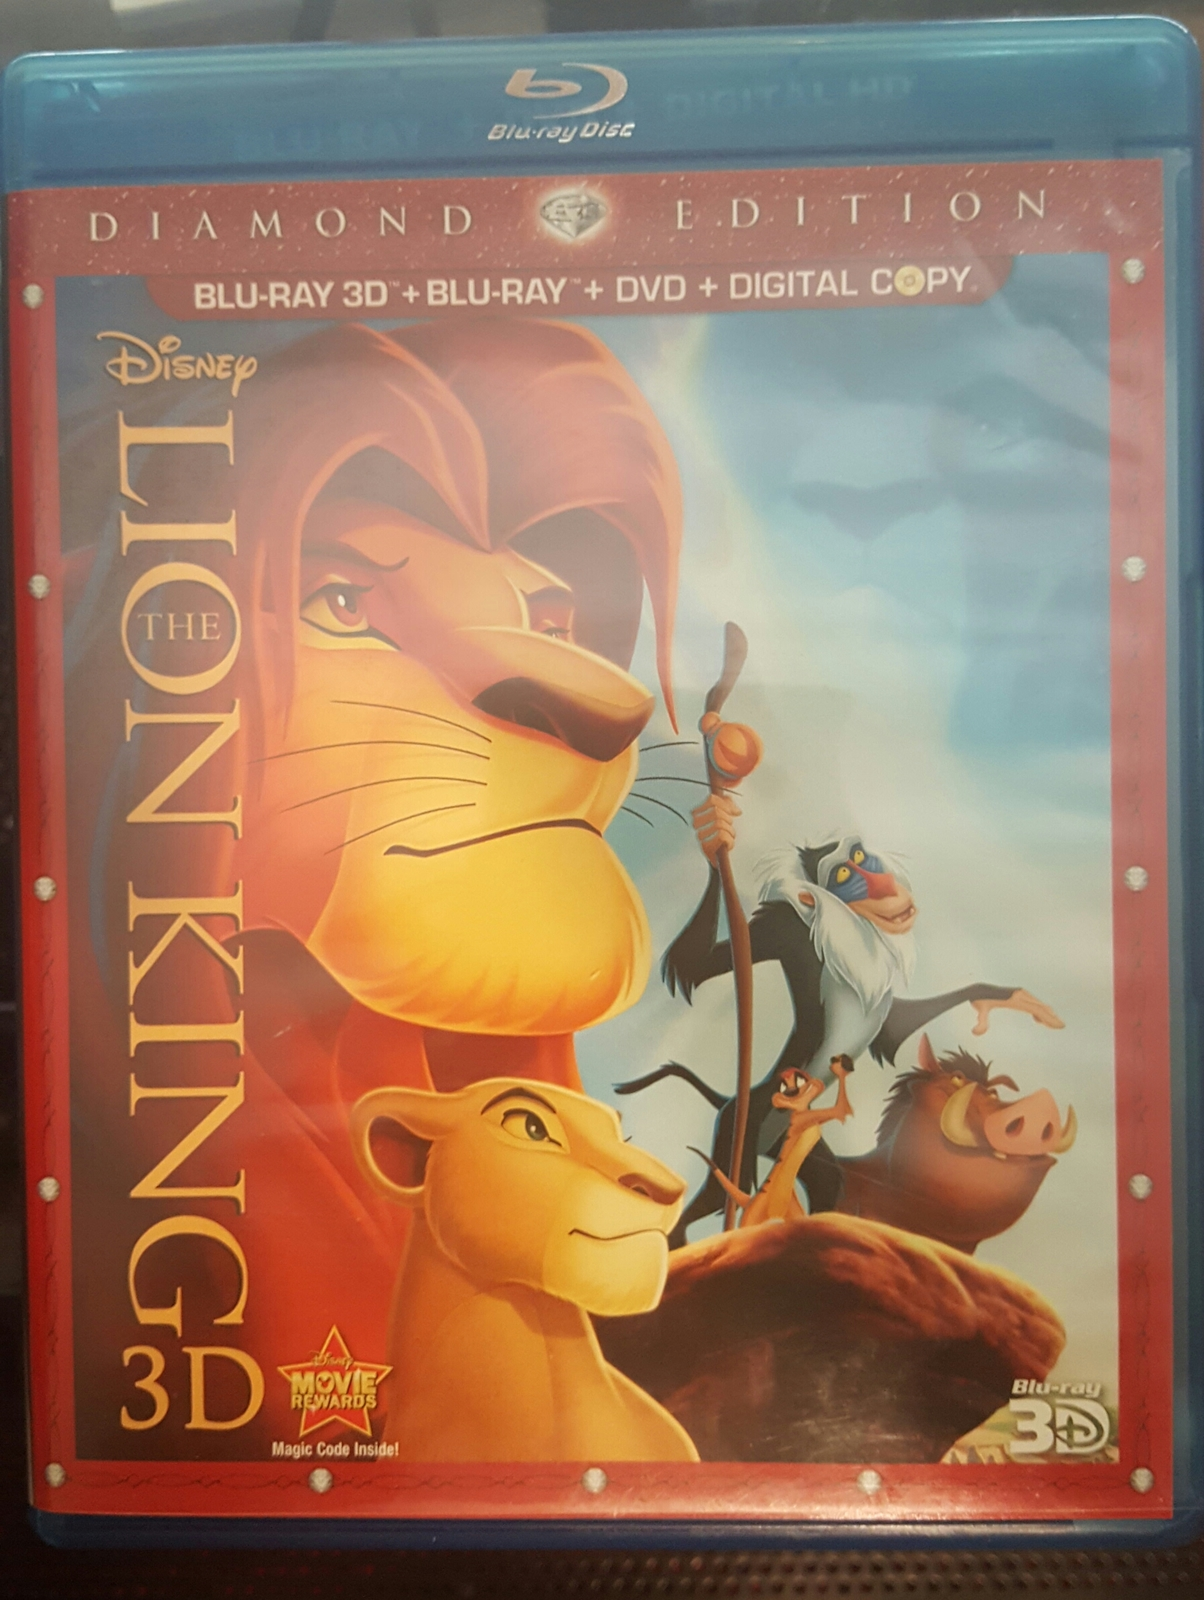 Lion King 3D: Diamond Edition Blu-ray 3D+Blu-ray+DVD]